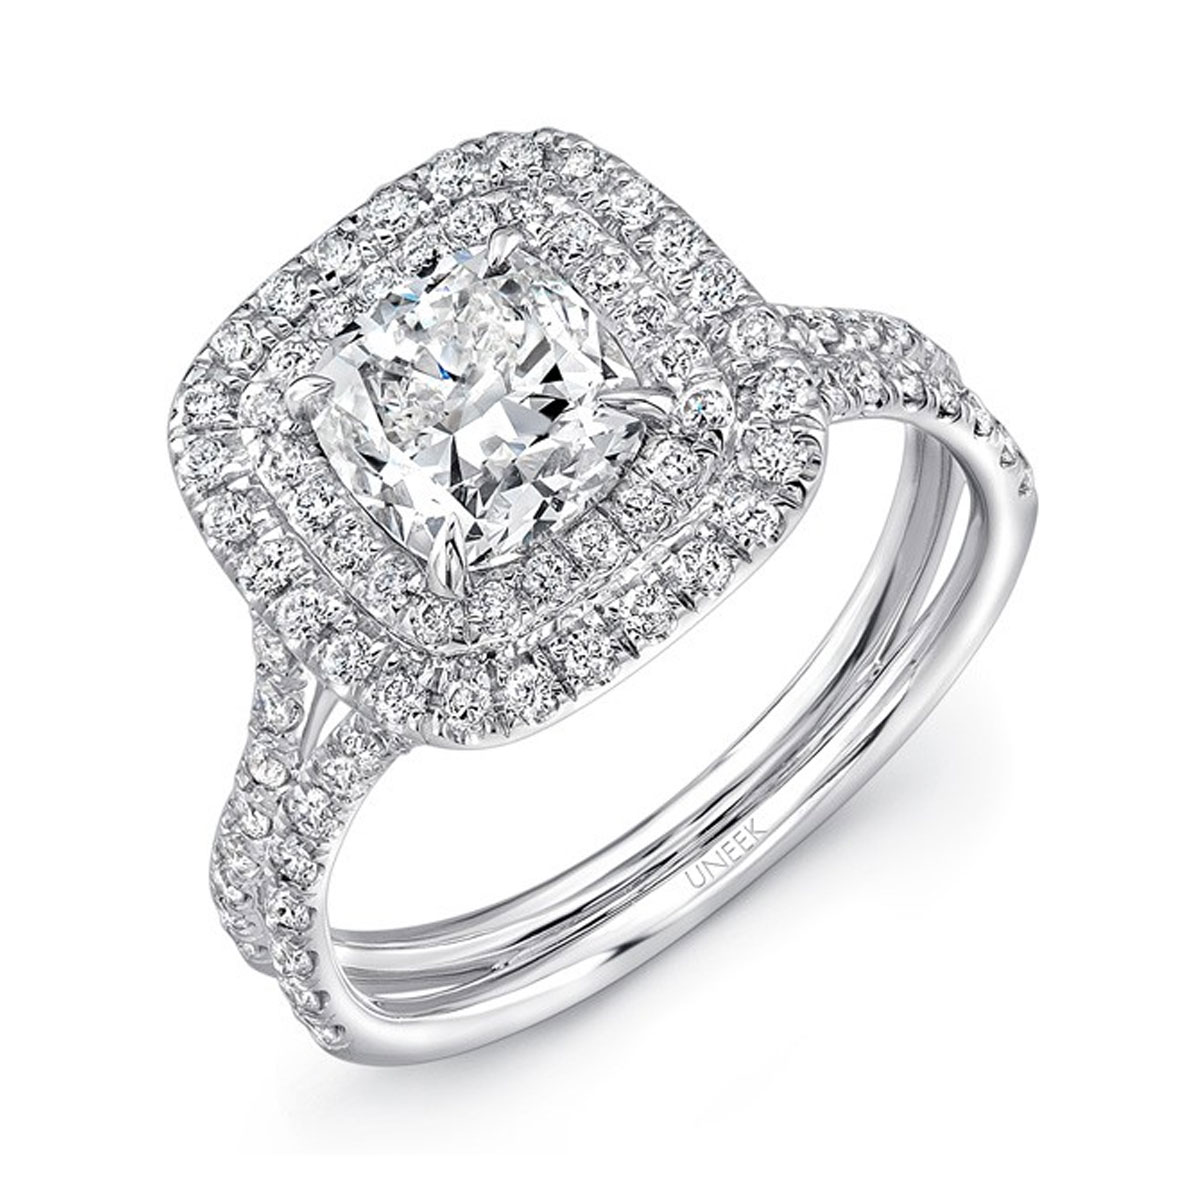 Uneek LVS914 0.65ctw Double Cushion Halo Engagement Ring